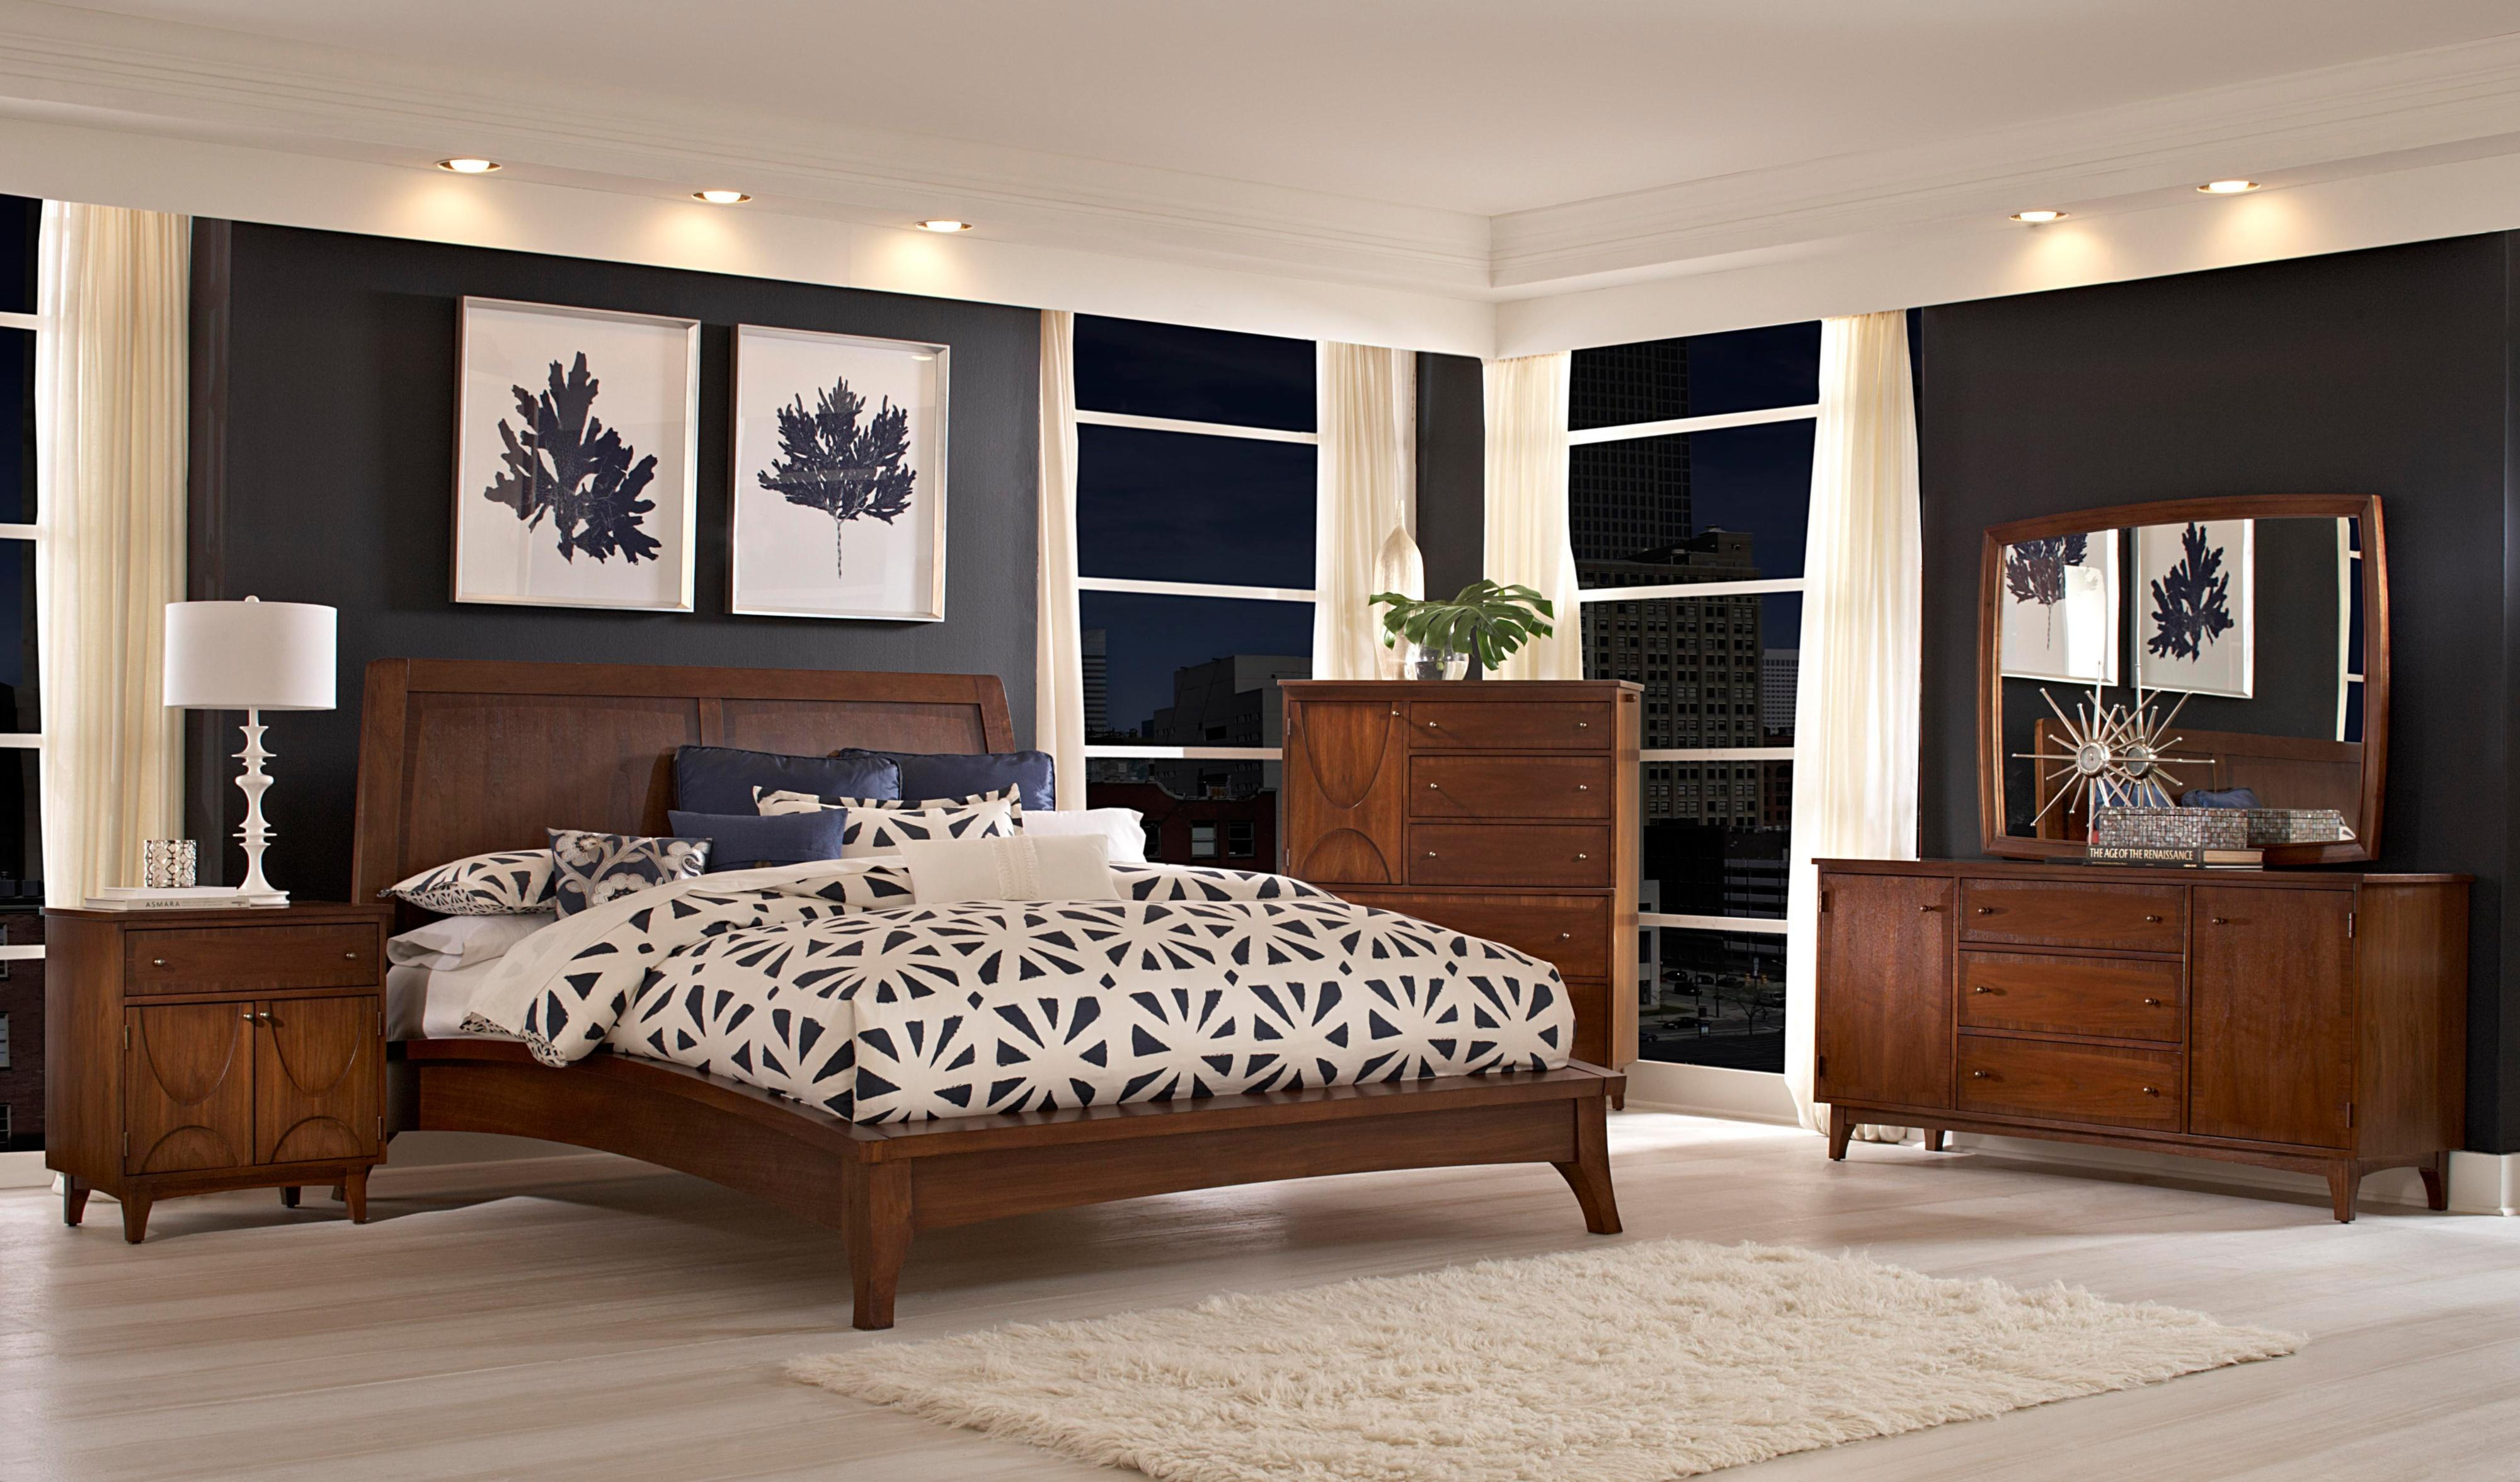 Broyhill Furniture Mardella Bedroom Group - Item Number: 4277 King Bed Group 2